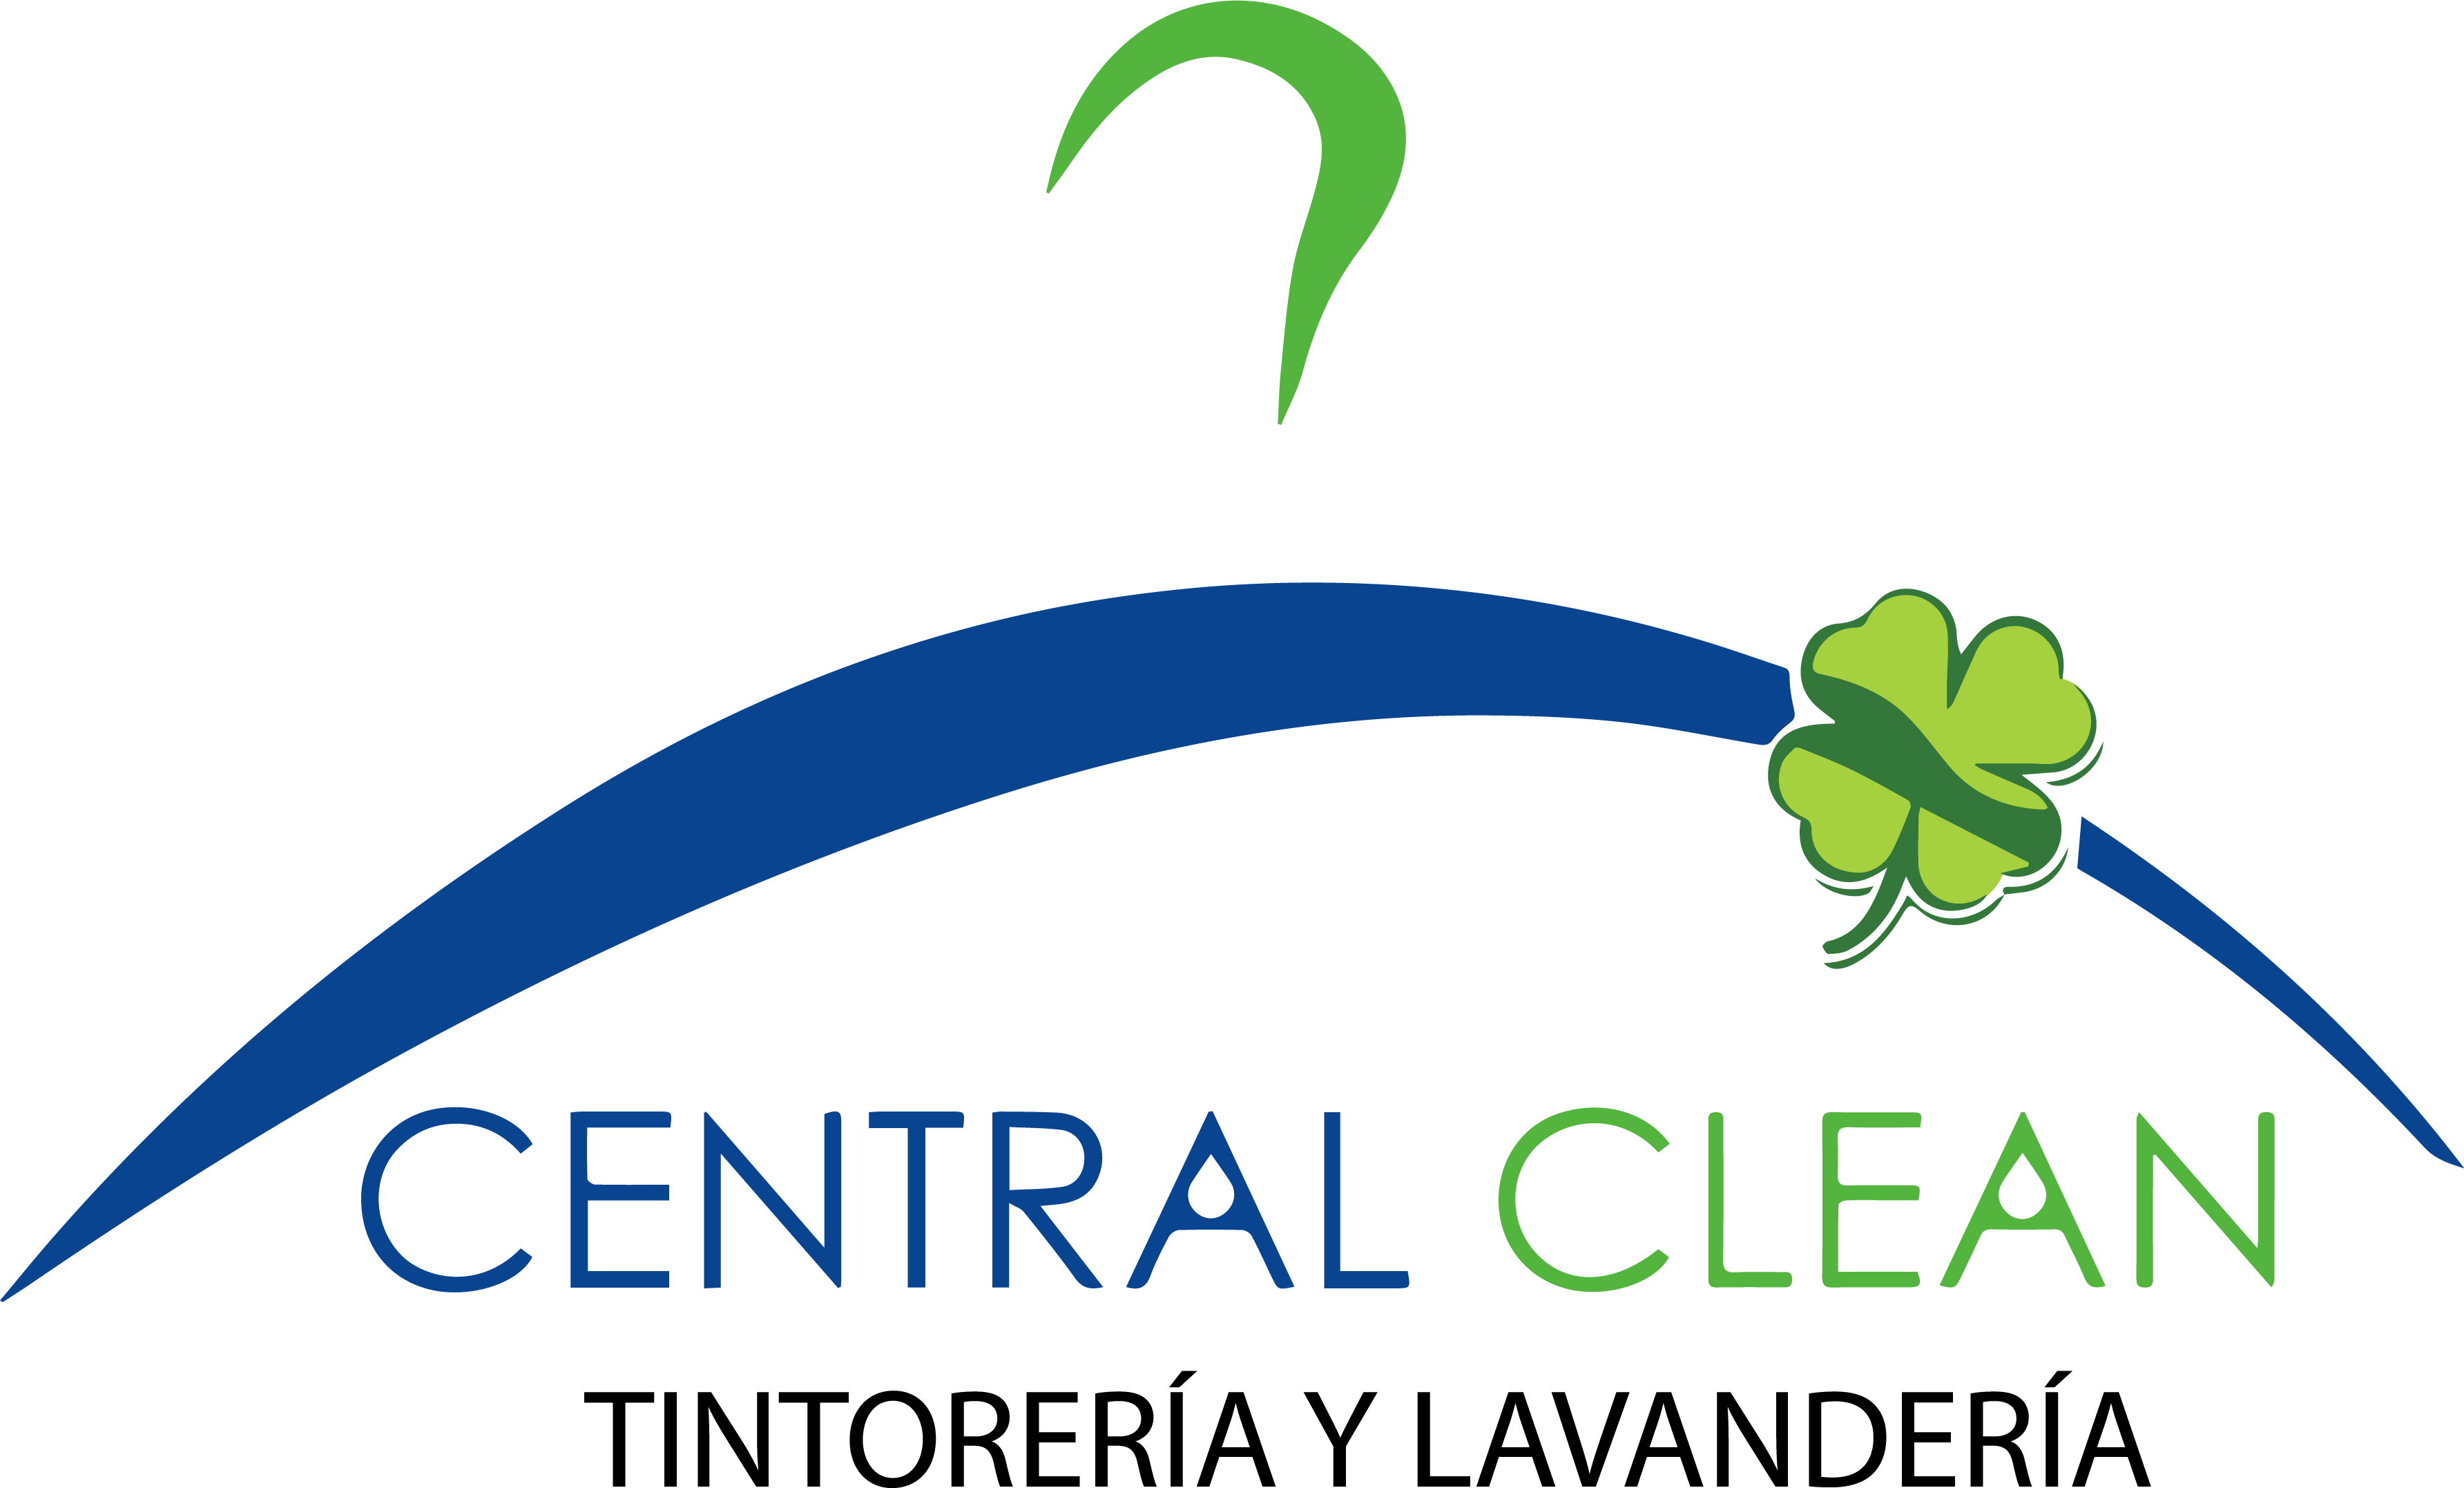 Central Clean